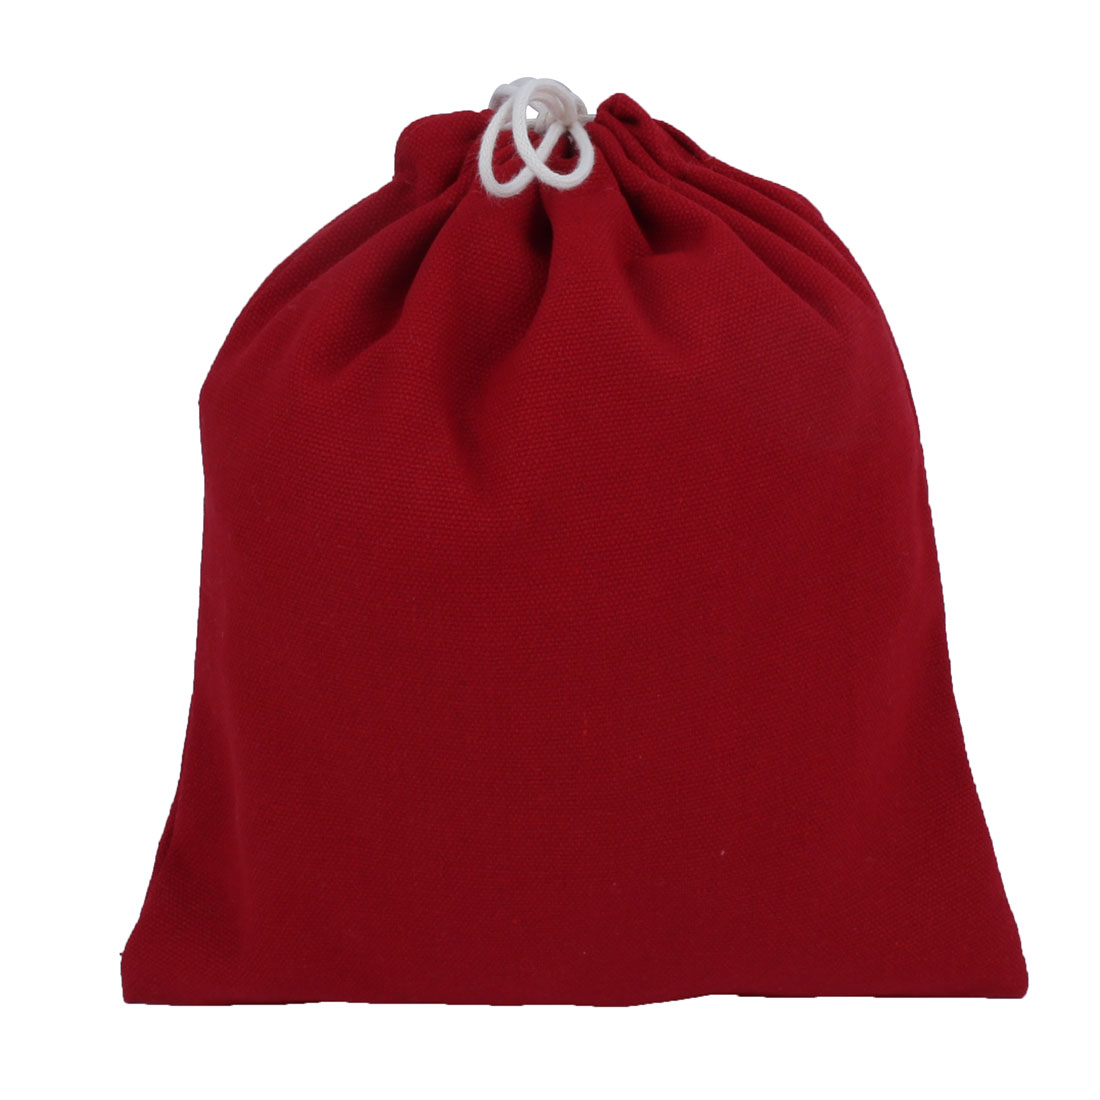 Home Travelling Canvas Drawstring String Pouch Storage Packing Gift Toe Bag Red